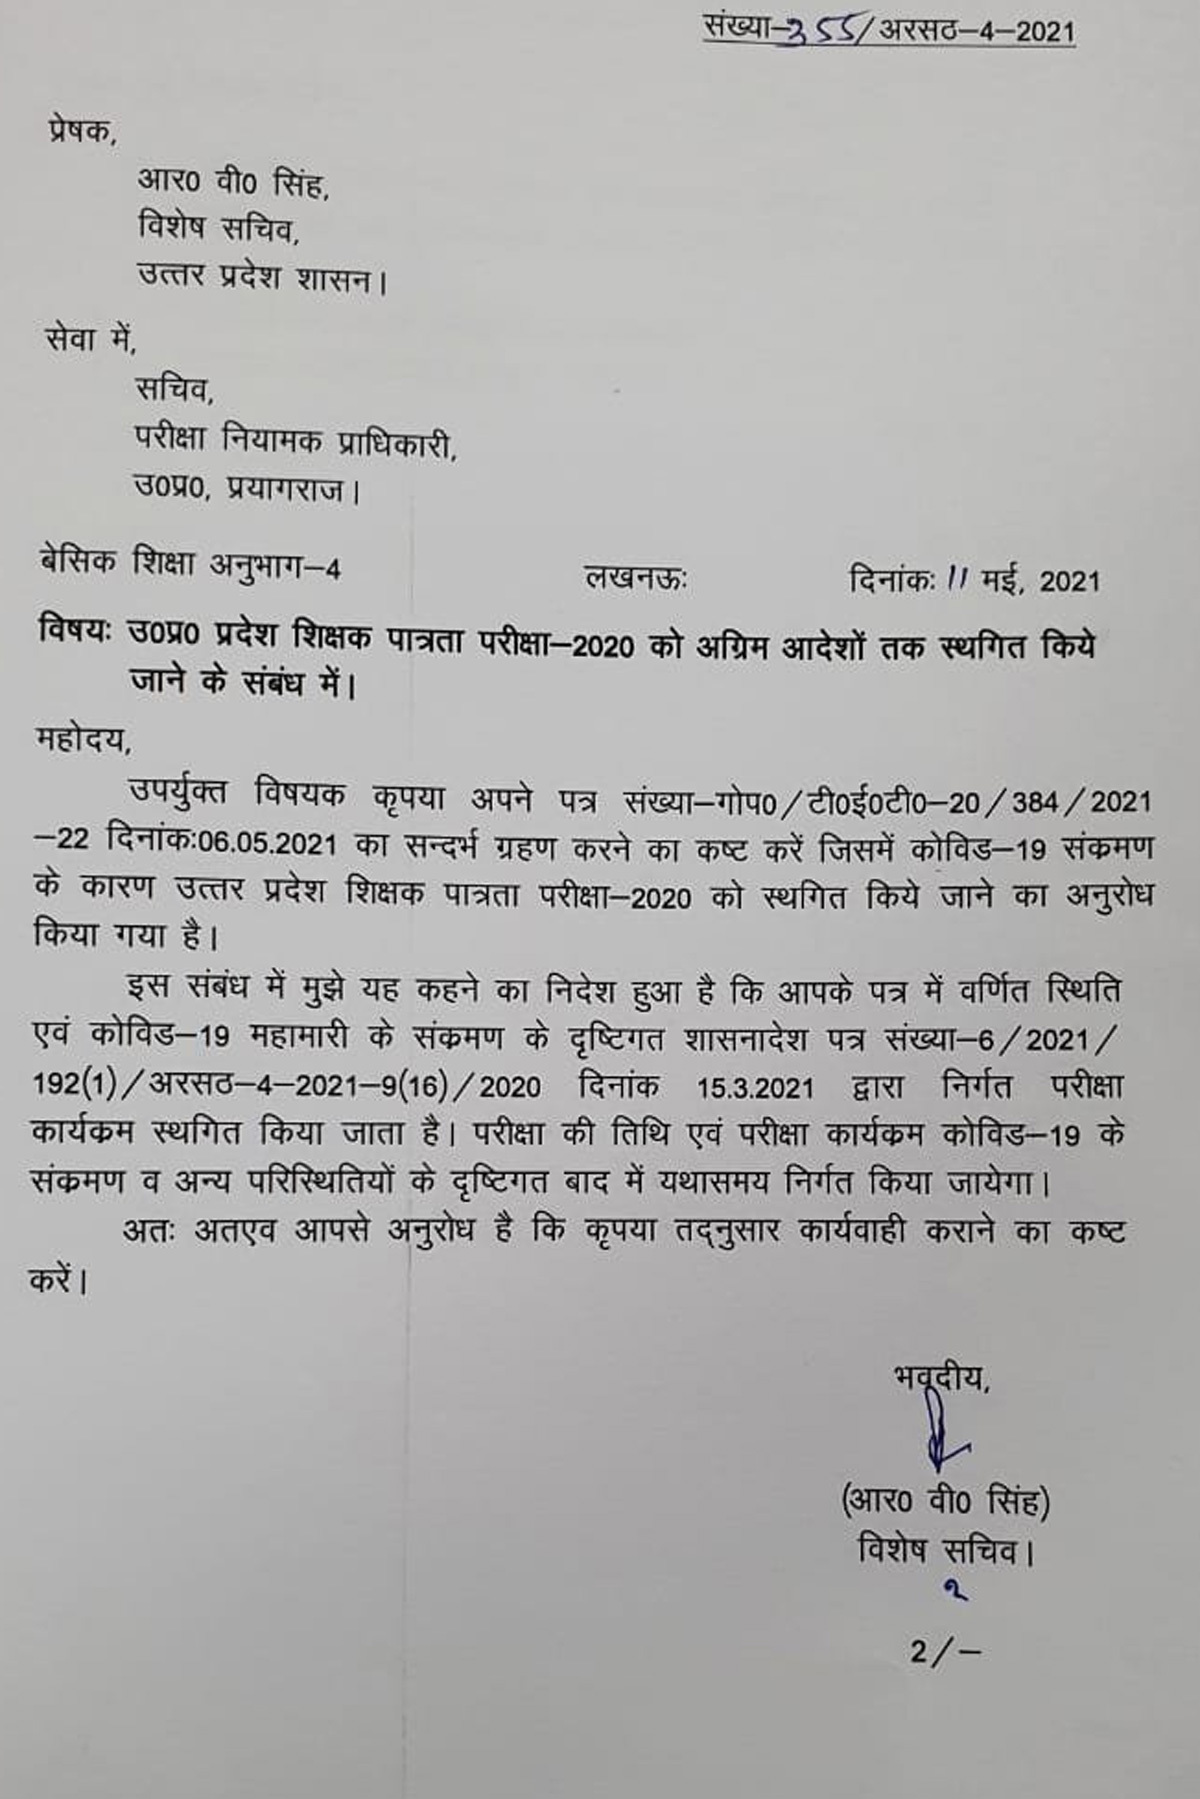 UP TET 2021 official notice